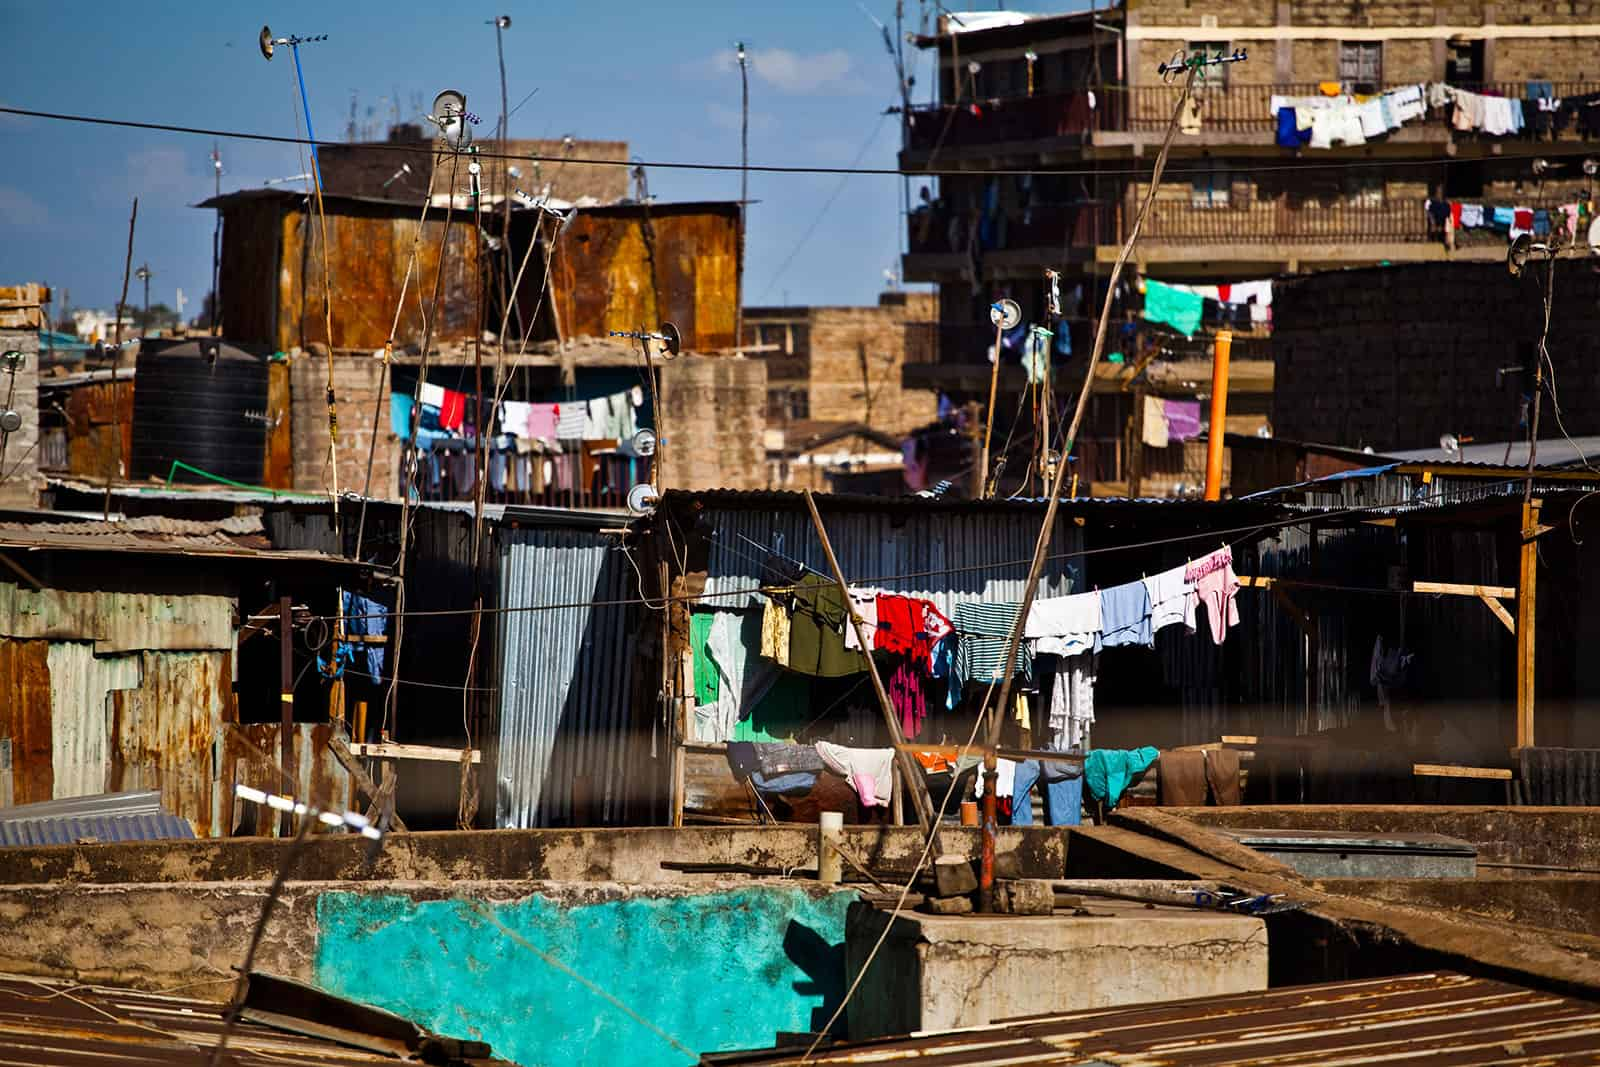 A slum in Kenya like the one sometimes visited in poverty tourism